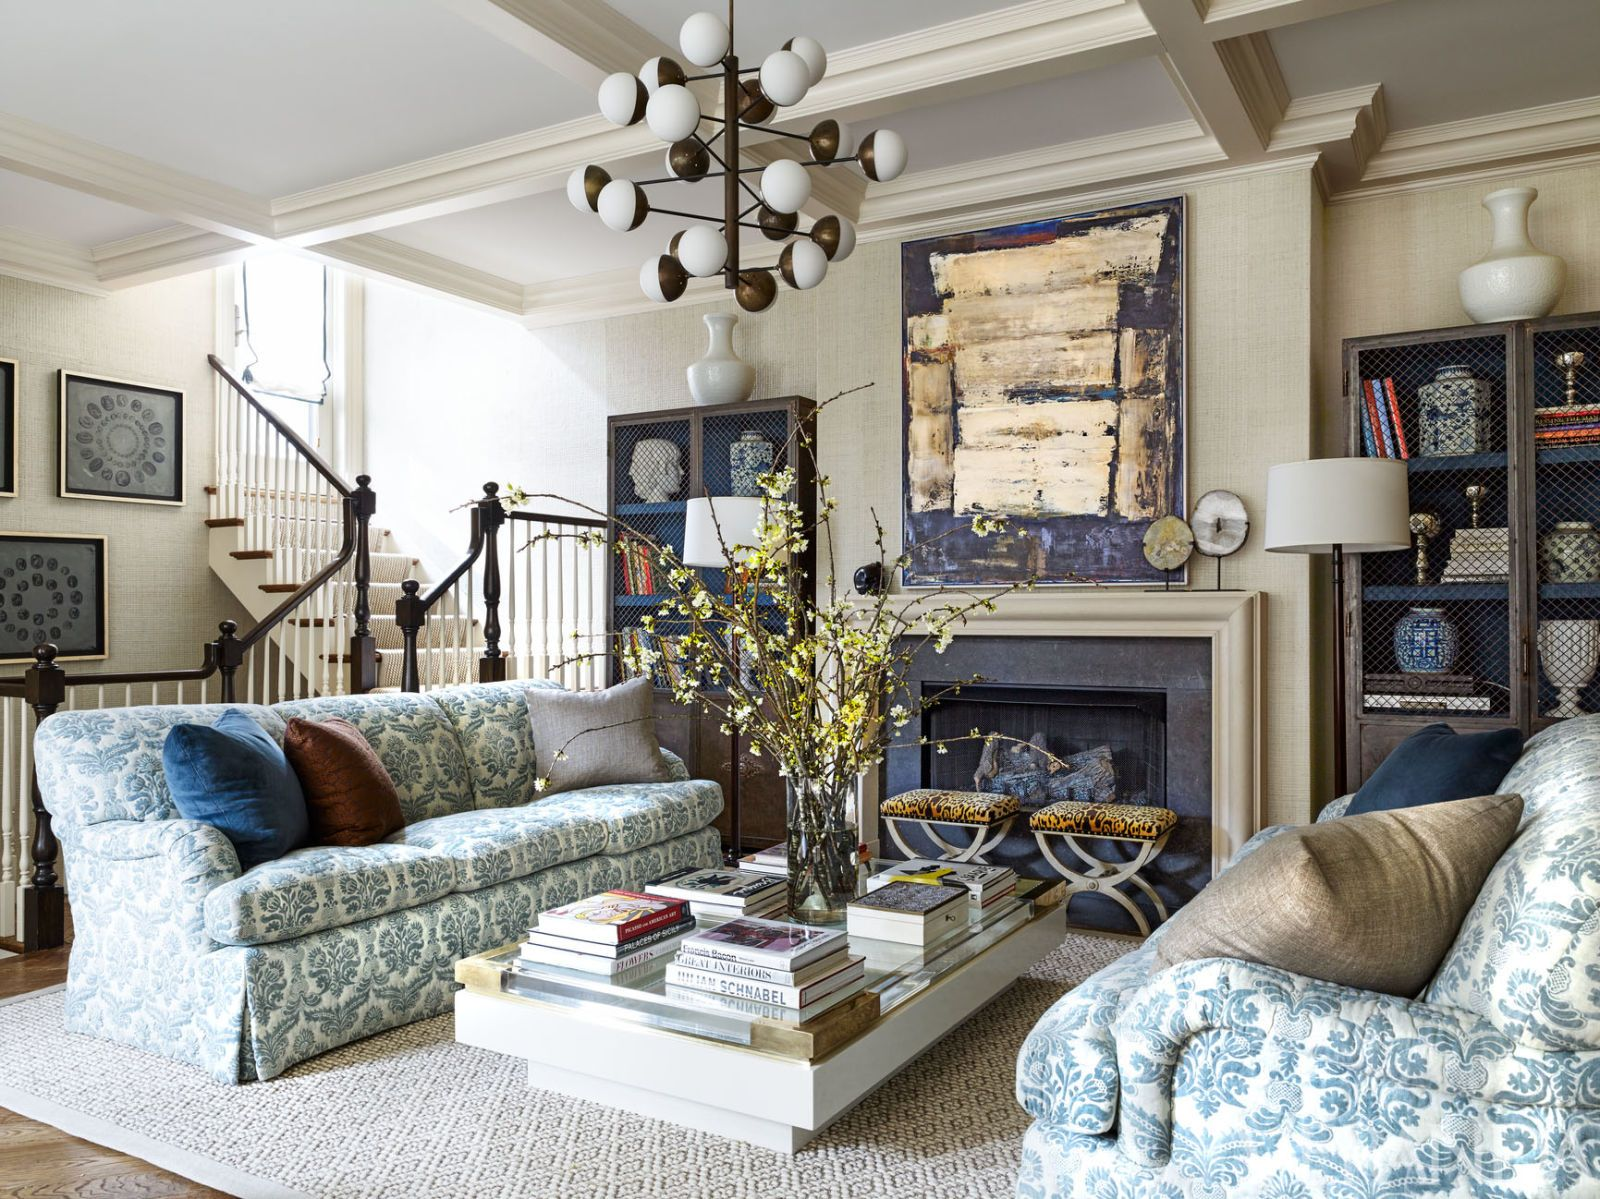 house tour: a modern chicago renovation that embraces history